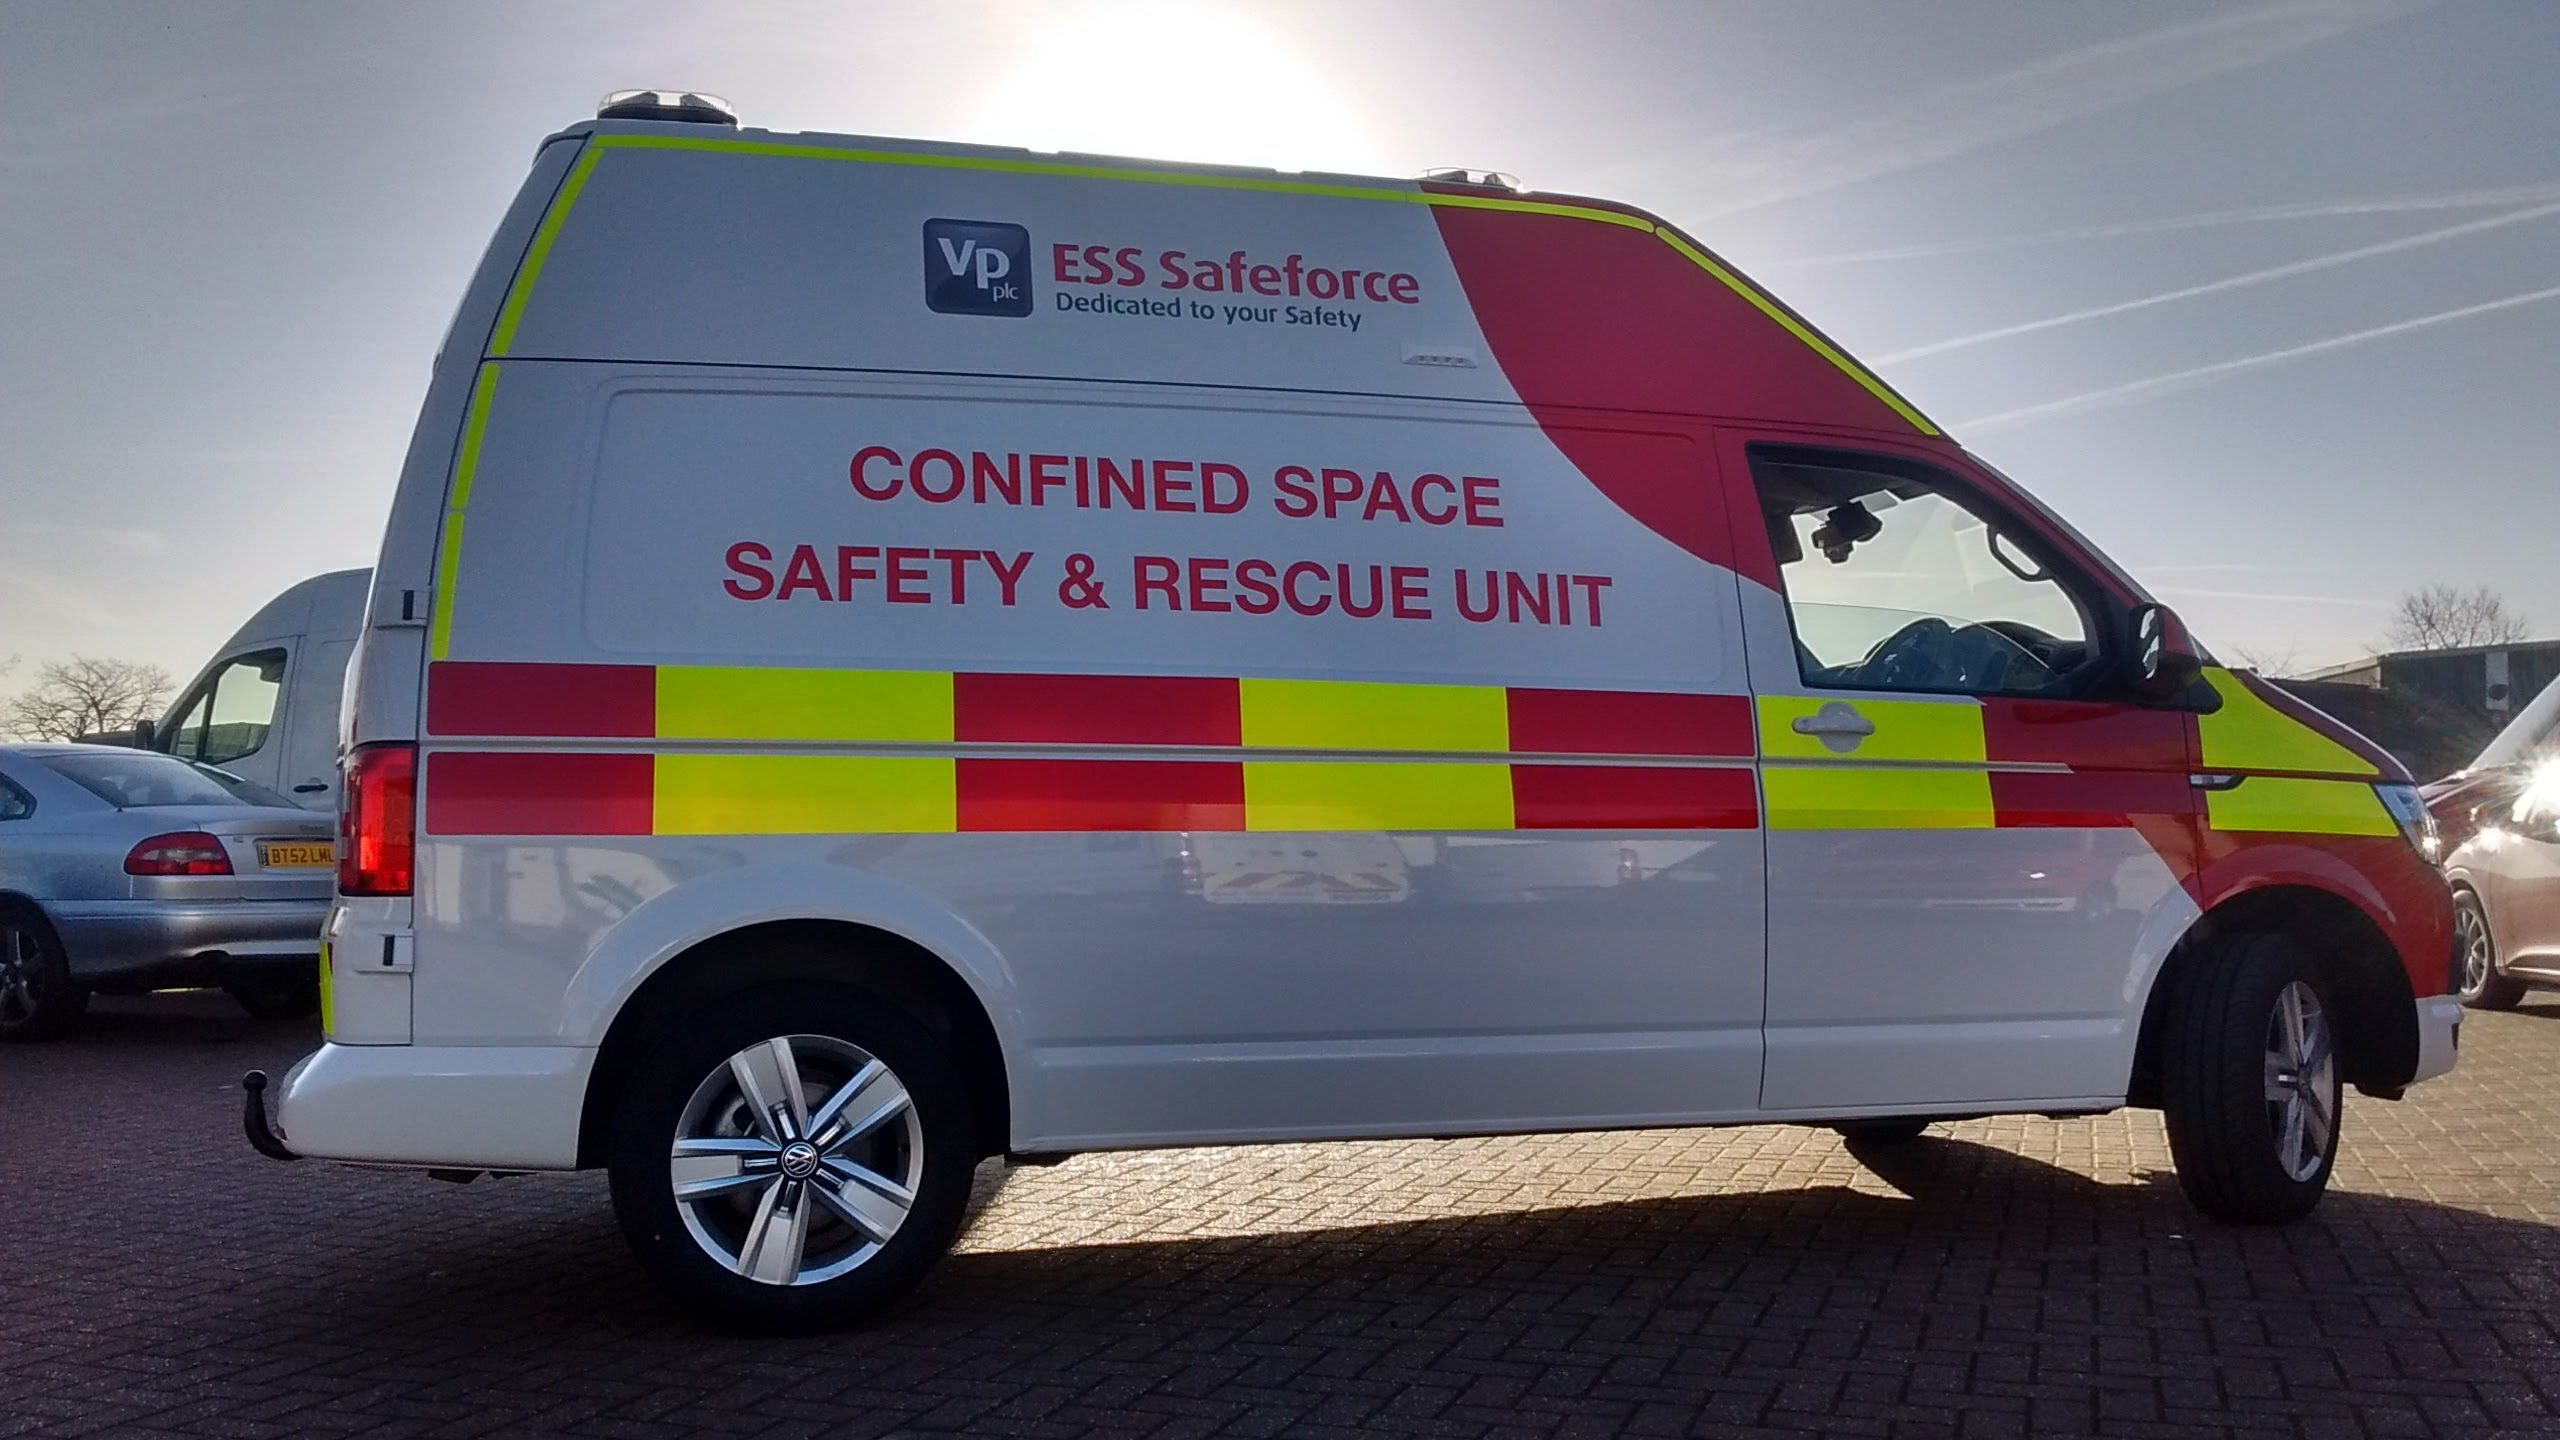 Confined Space Safety & Rescue Unit